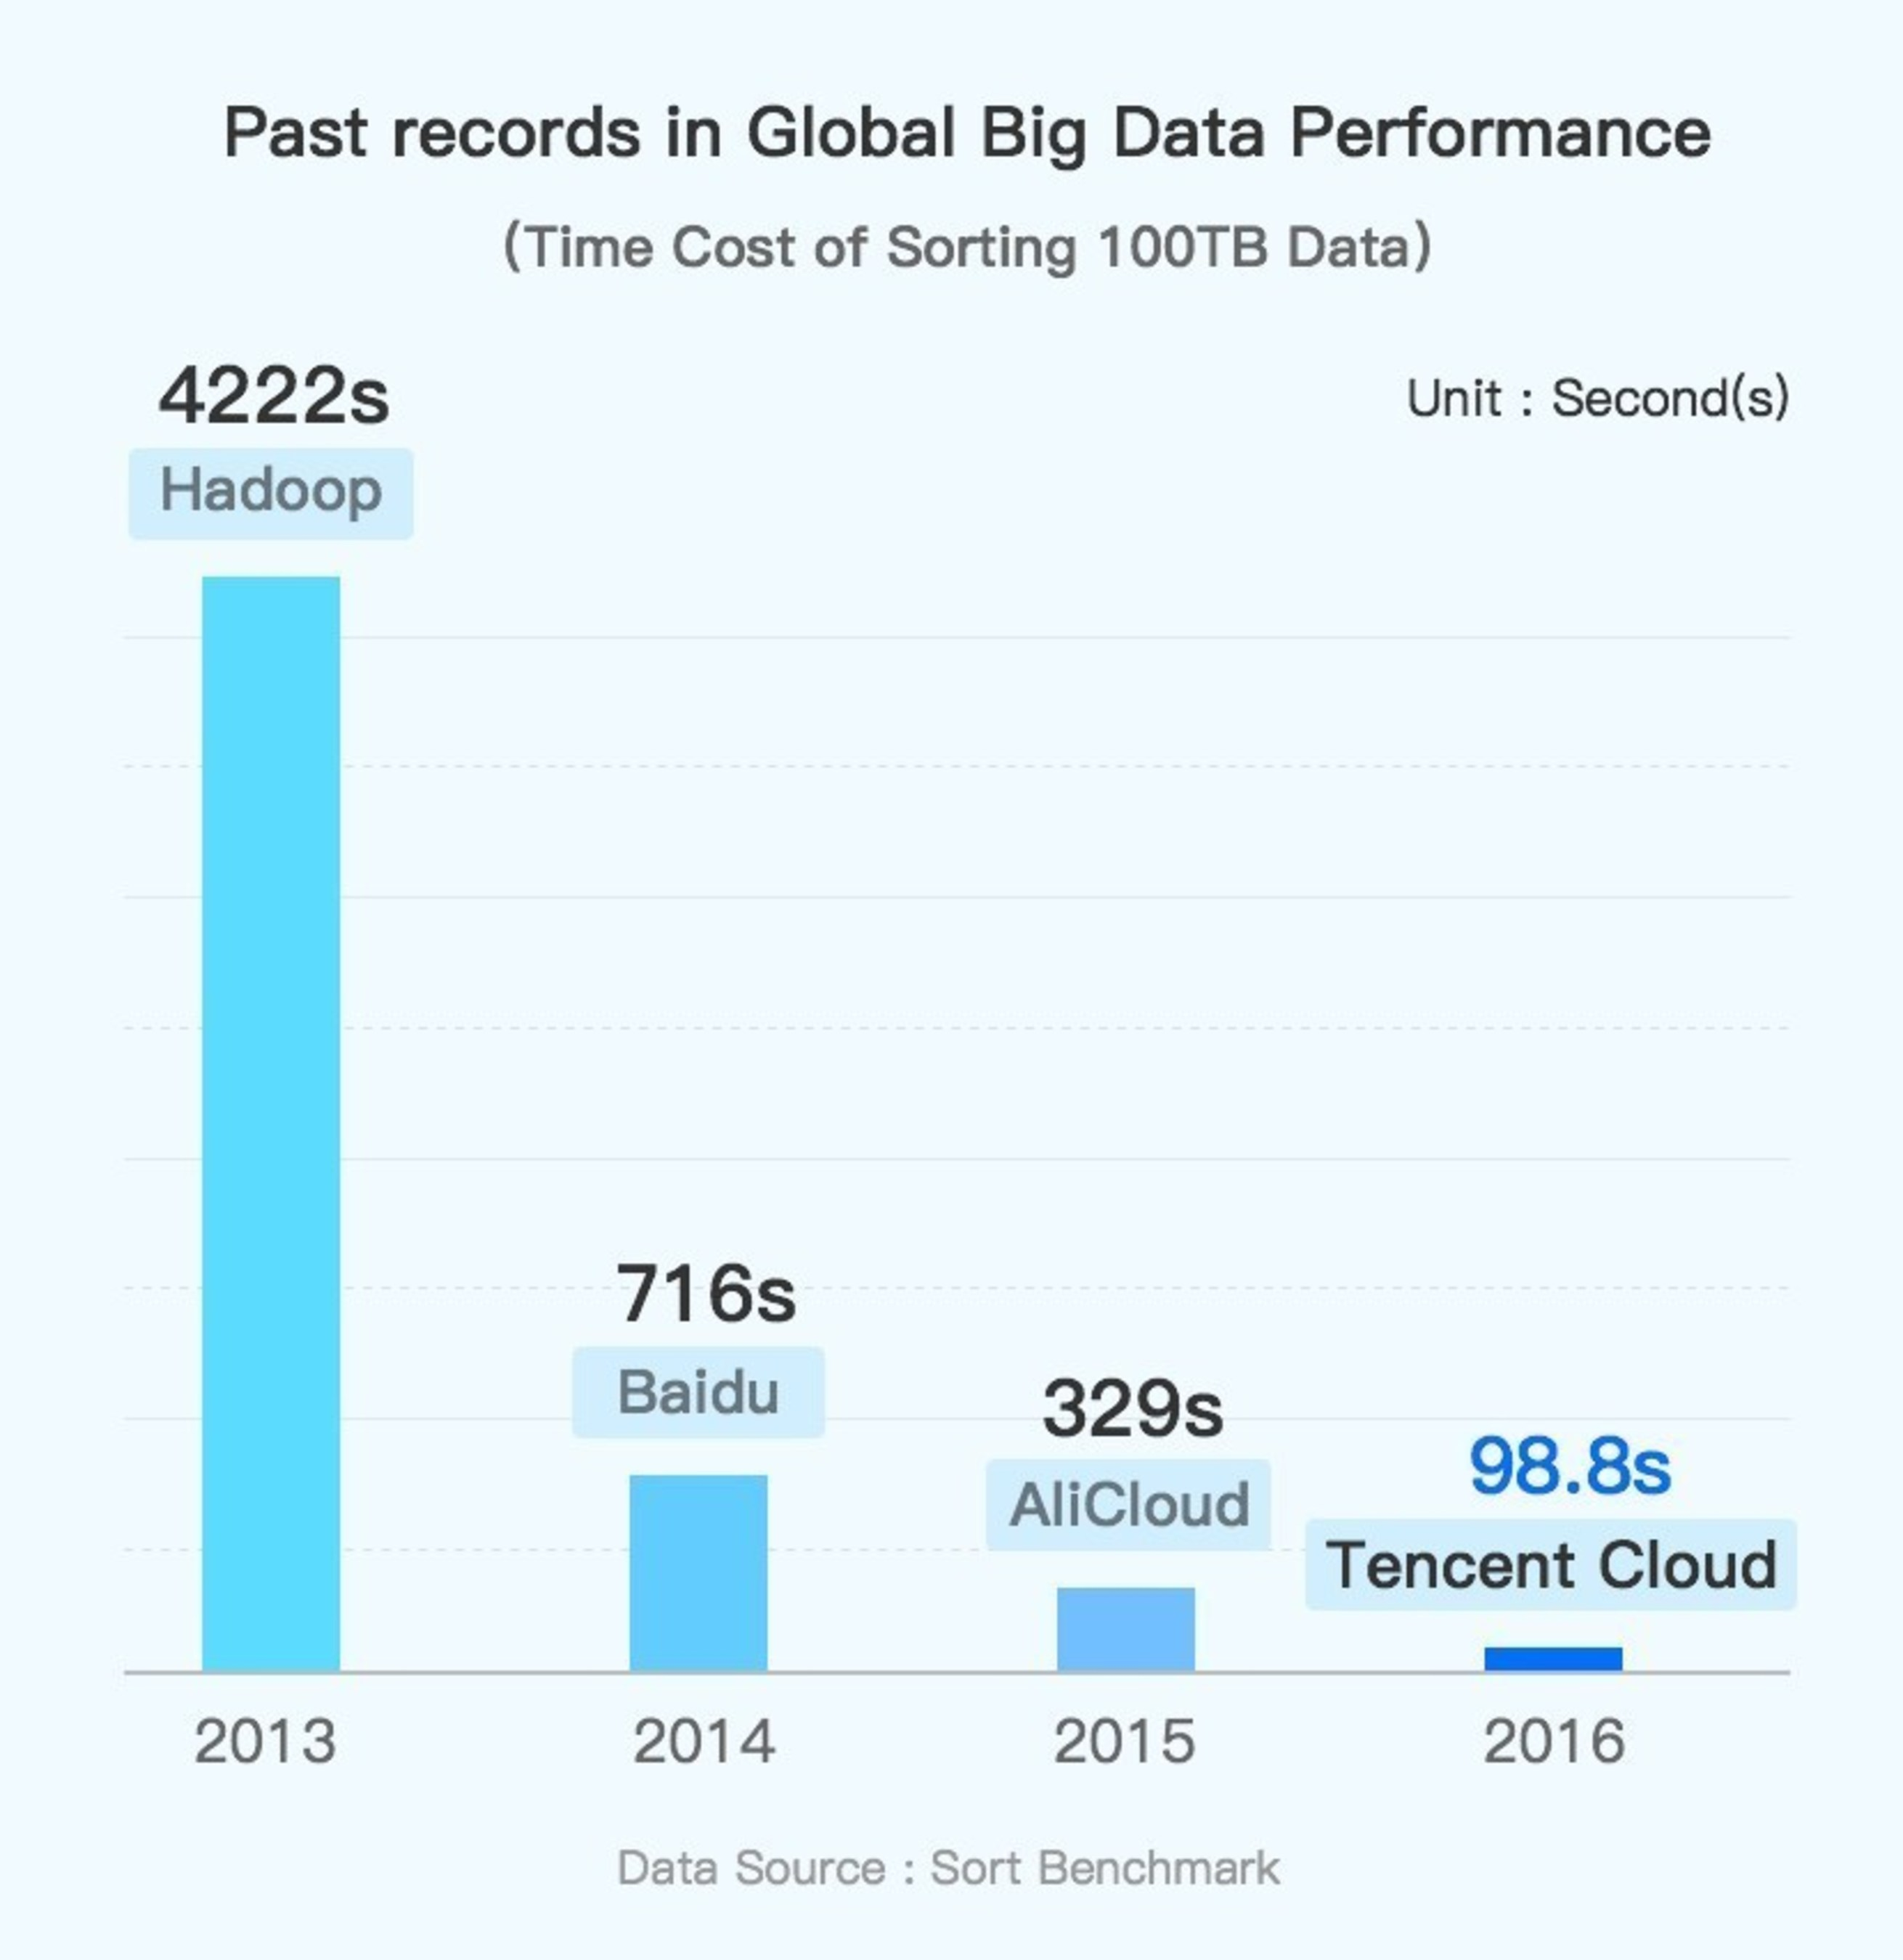 Past records in Global Big Data Performance